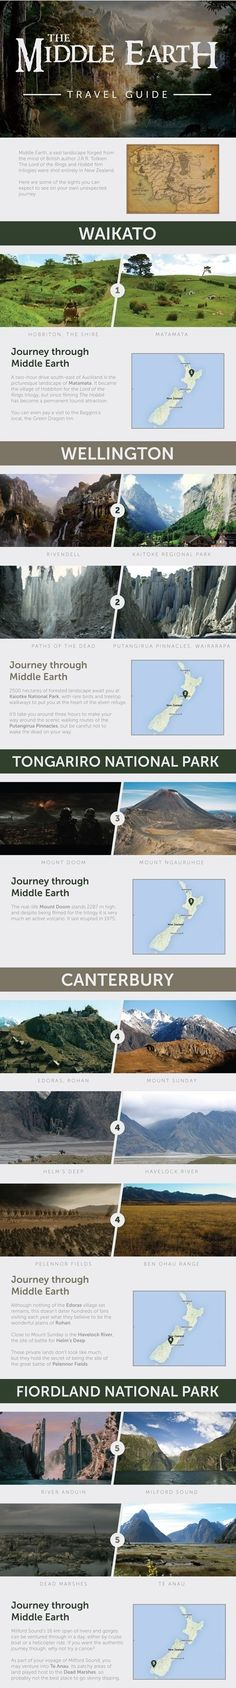 New Zealand LOTR and Hobbit locations. I want to go to every place. O_O